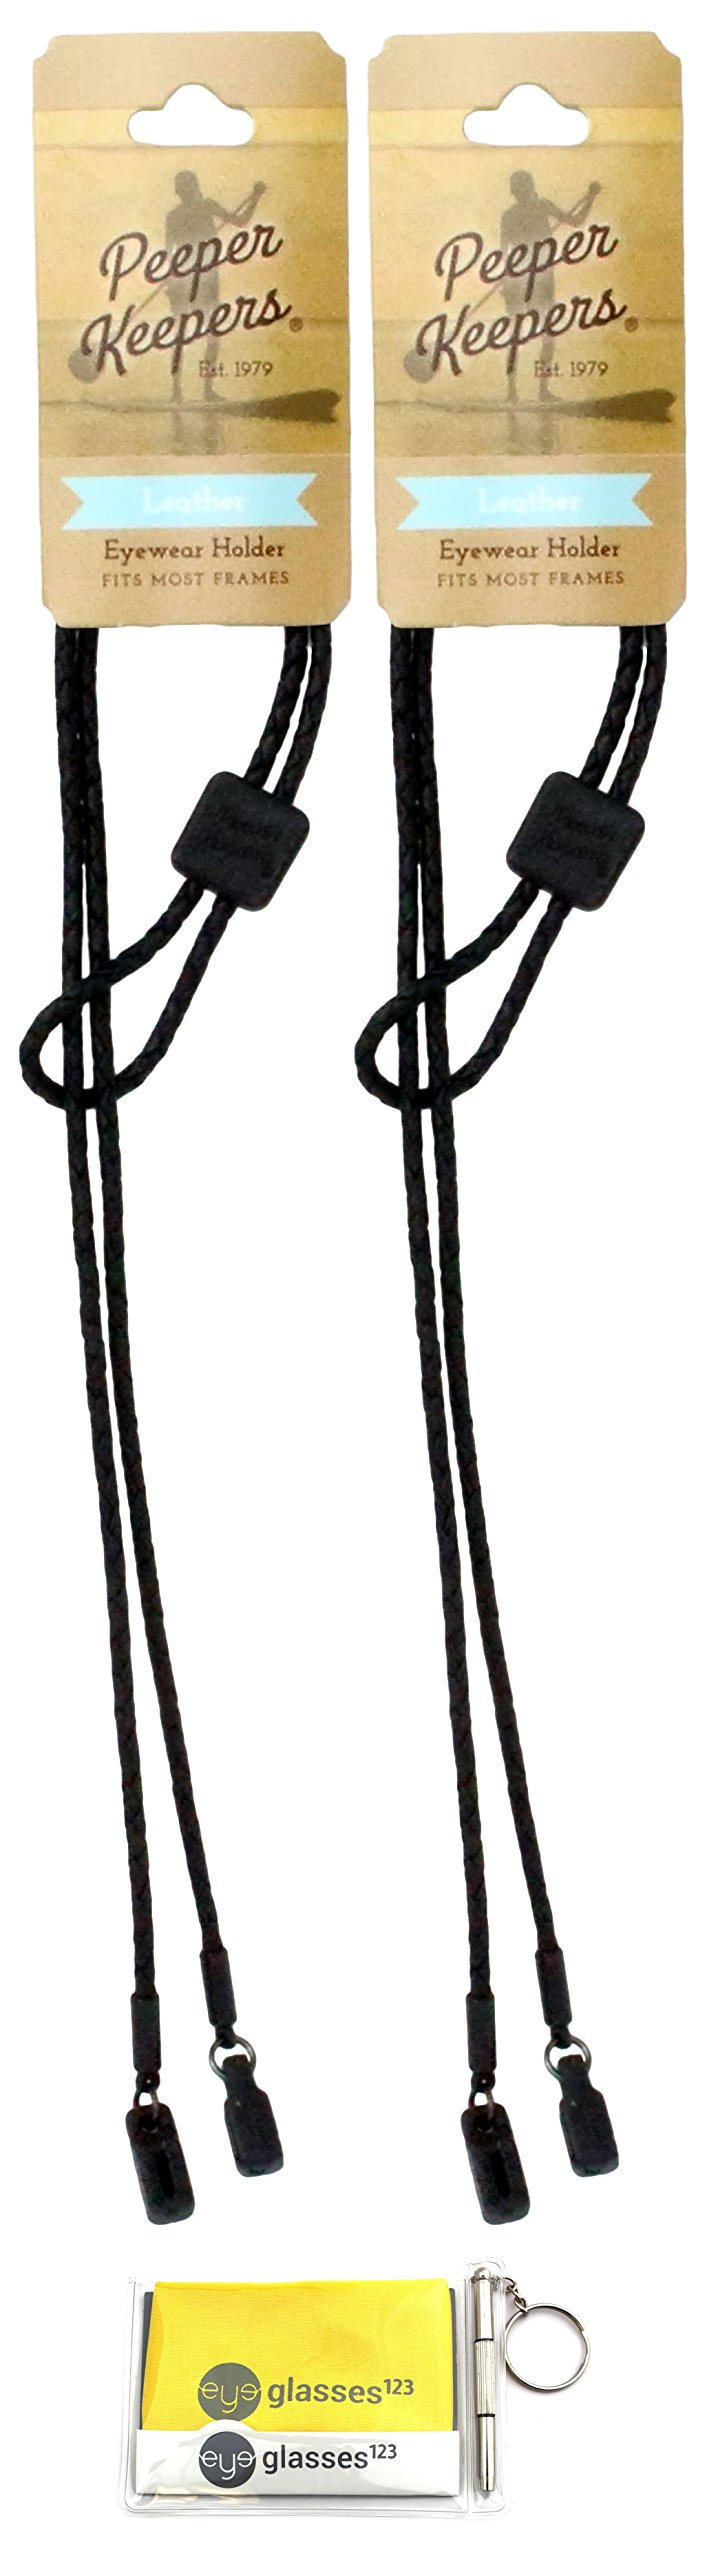 Peeper Keepers Braided Leather Adjustable Eyeglass Retainer, Black, 2 pack, w/Cloth & Screwdriver by Peeper Keepers